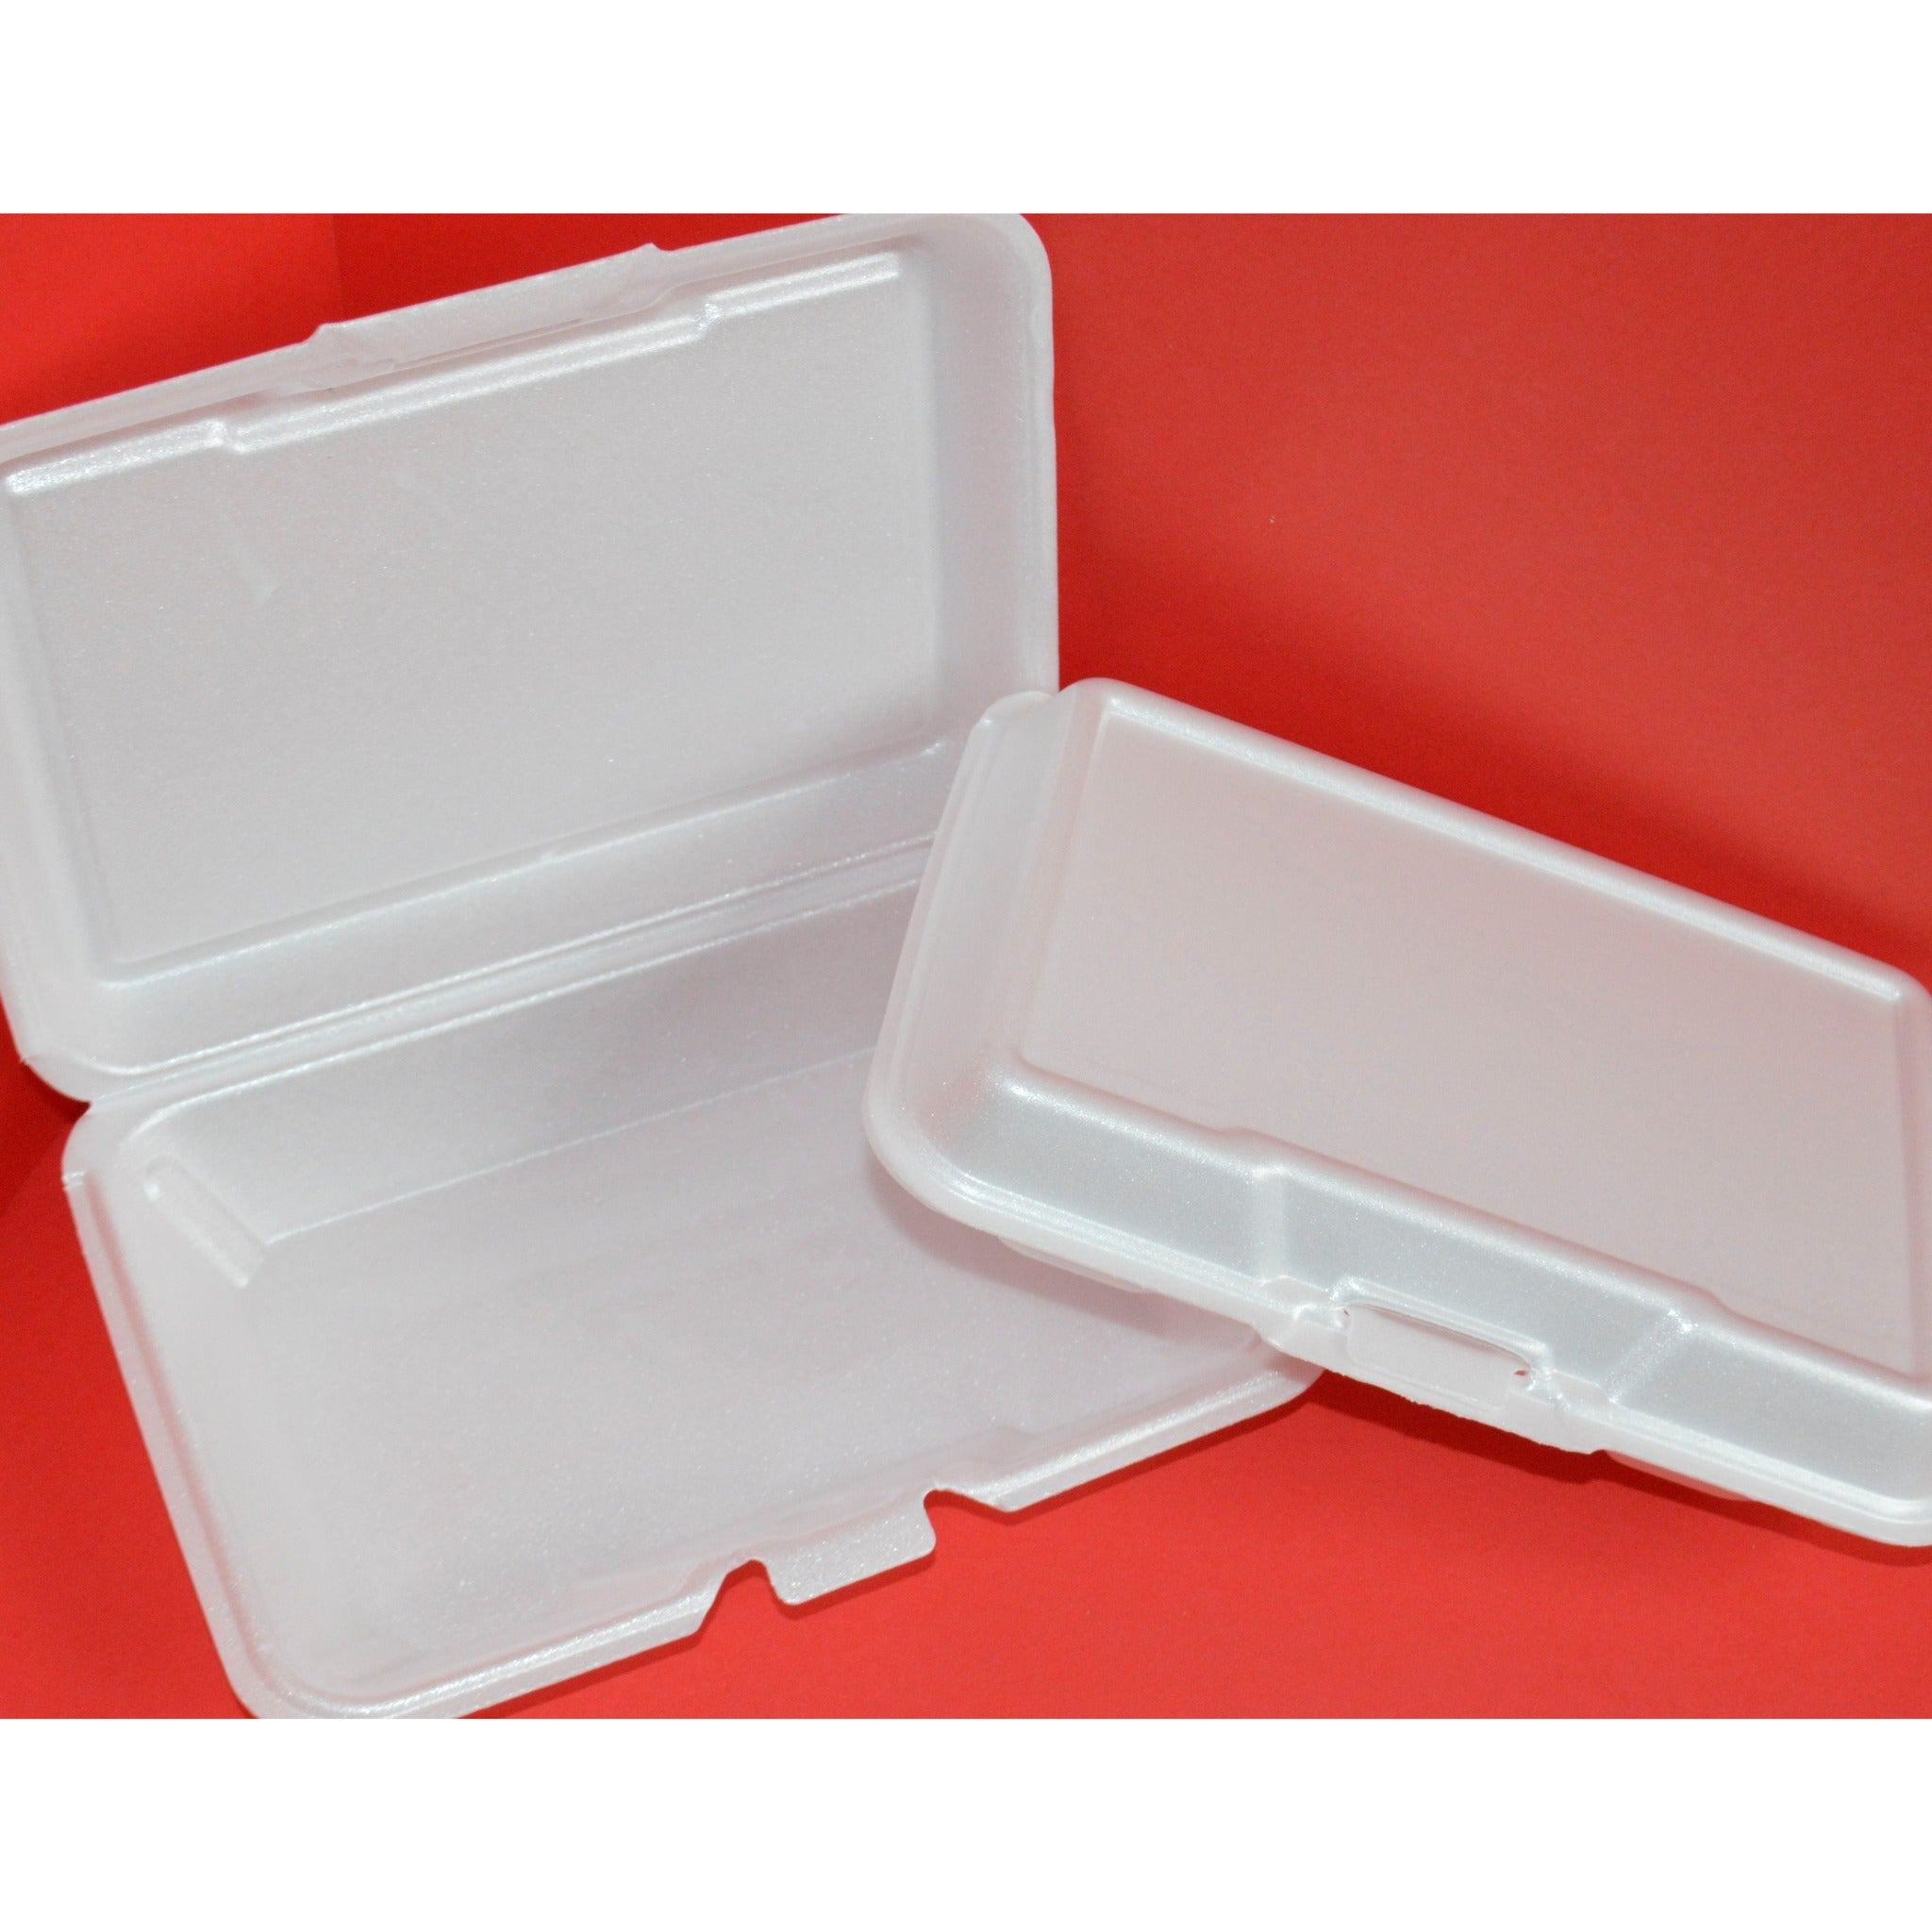 #205 1-Compartment Foam Hinged Containers